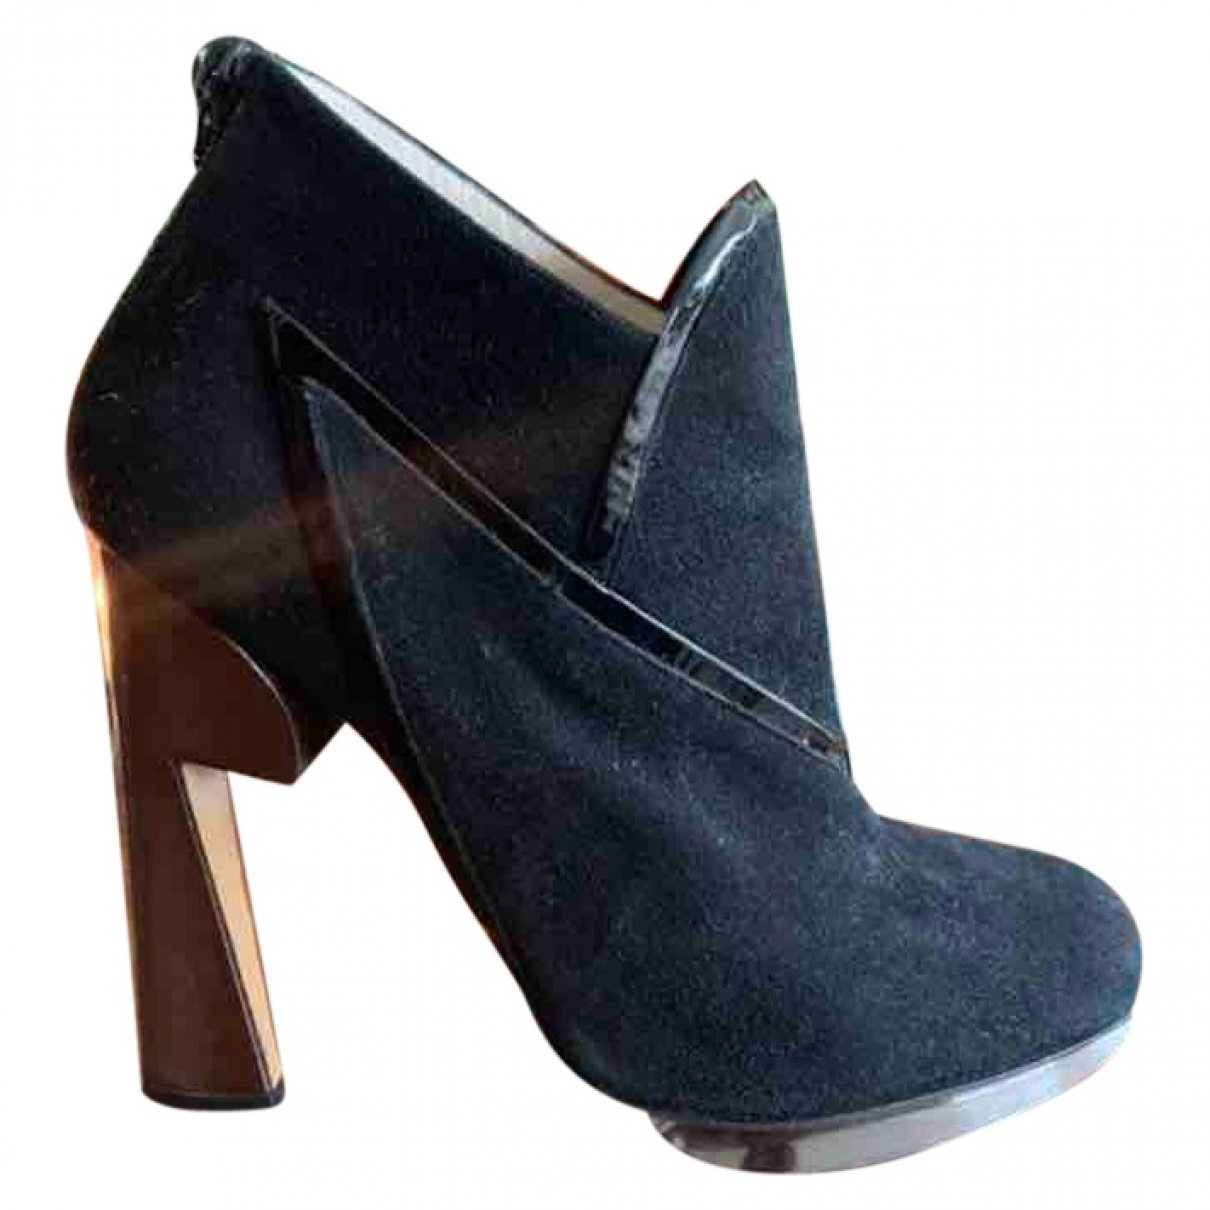 Nicholas Kirkwood \N Black Suede Ankle boots for Women 36.5 EU